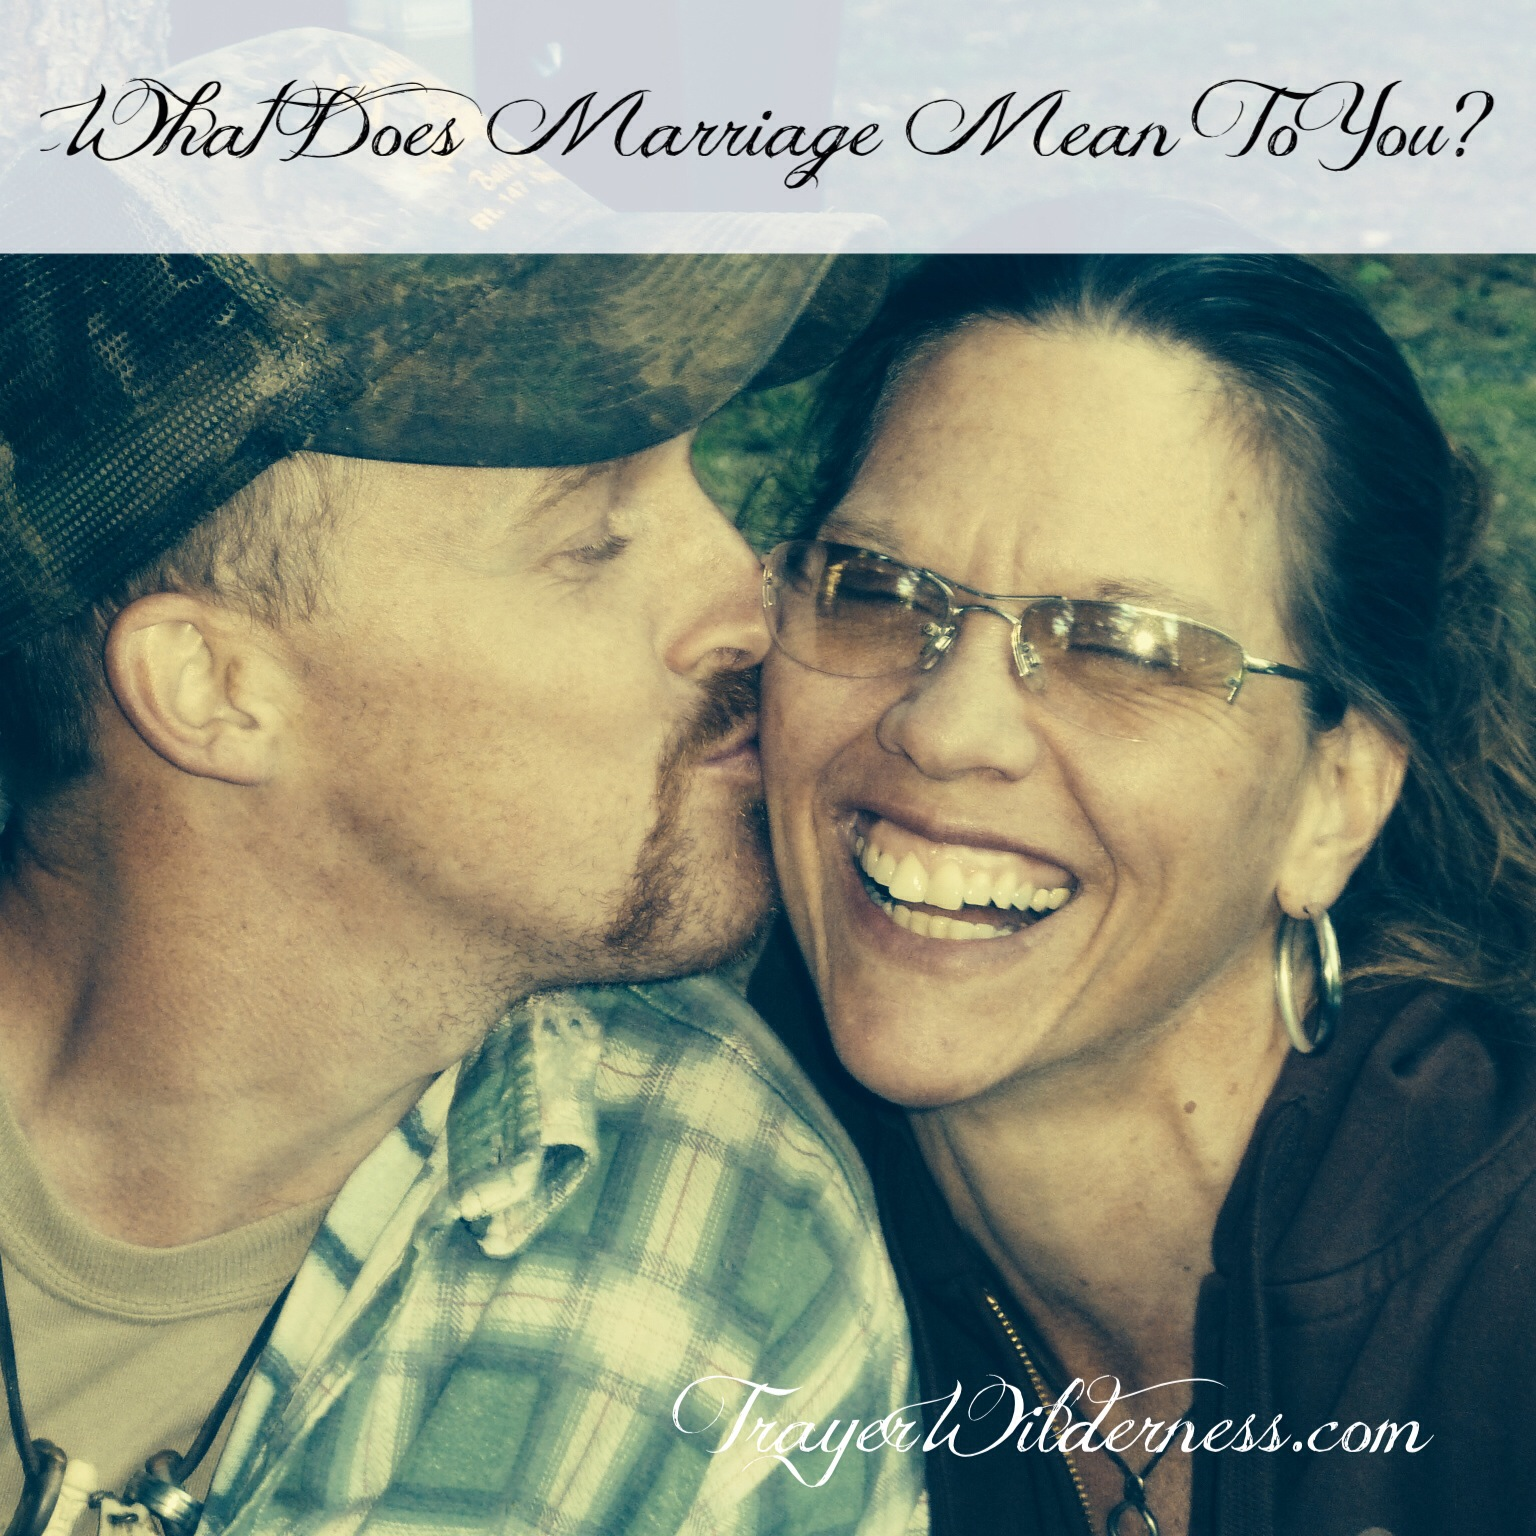 Marriage – What Does Your Marriage Mean To You?